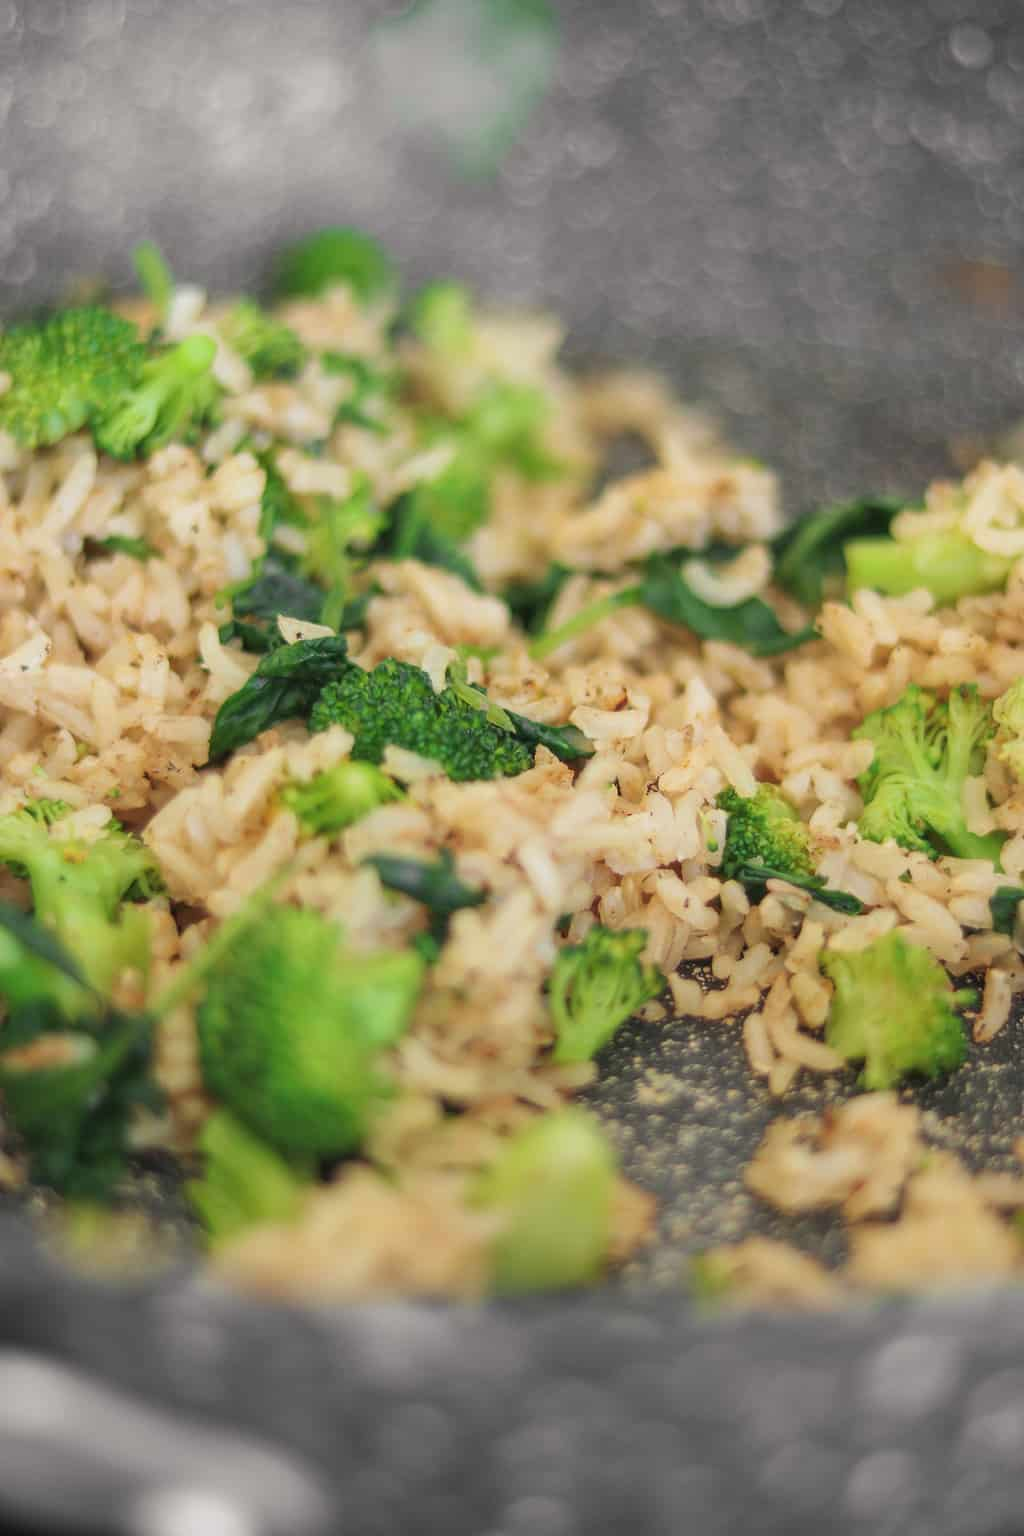 Brown rice, broccoli and spinach in a frying pan